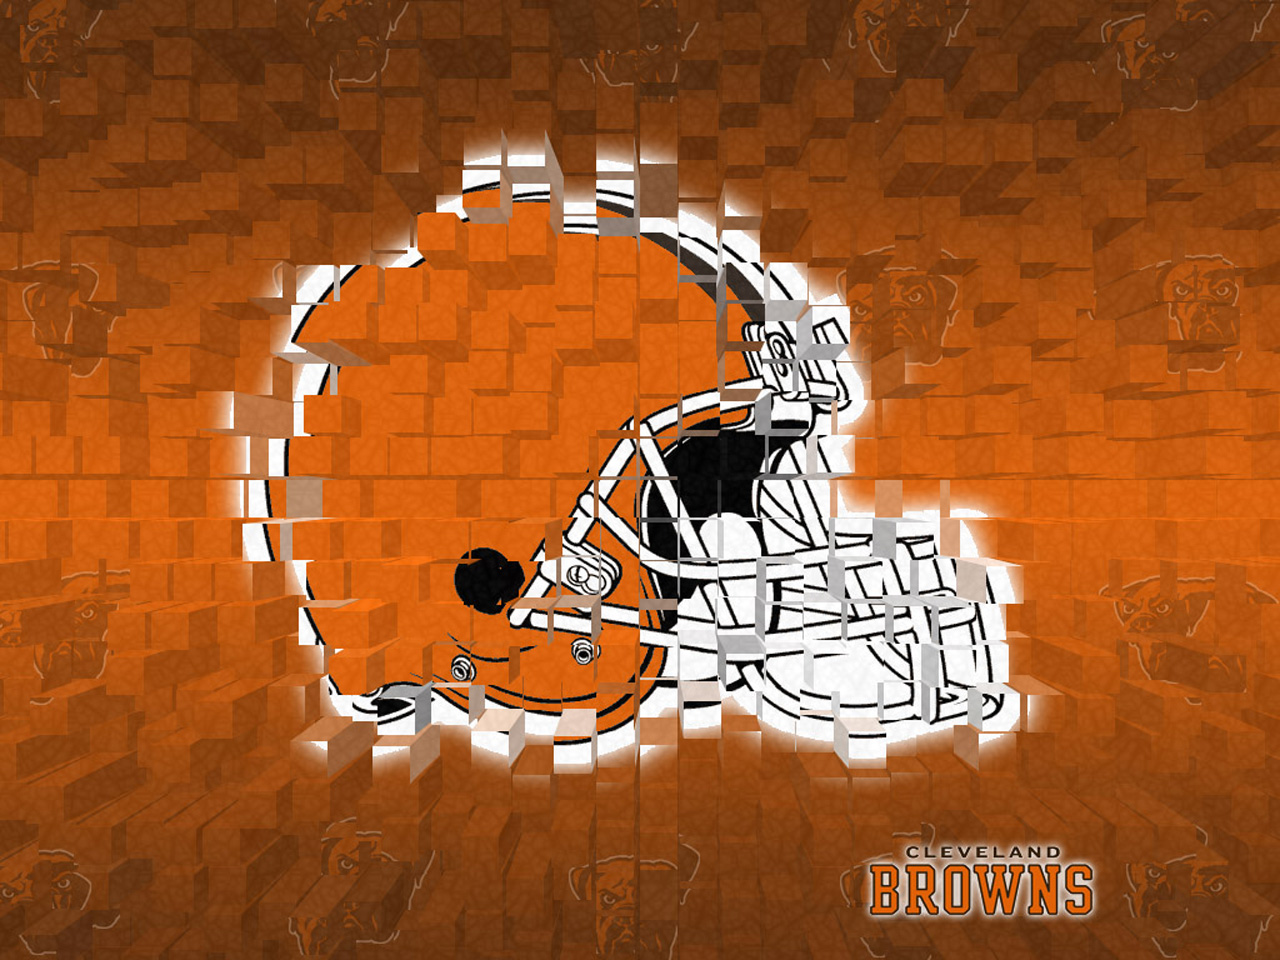 cleveland browns - photo #10